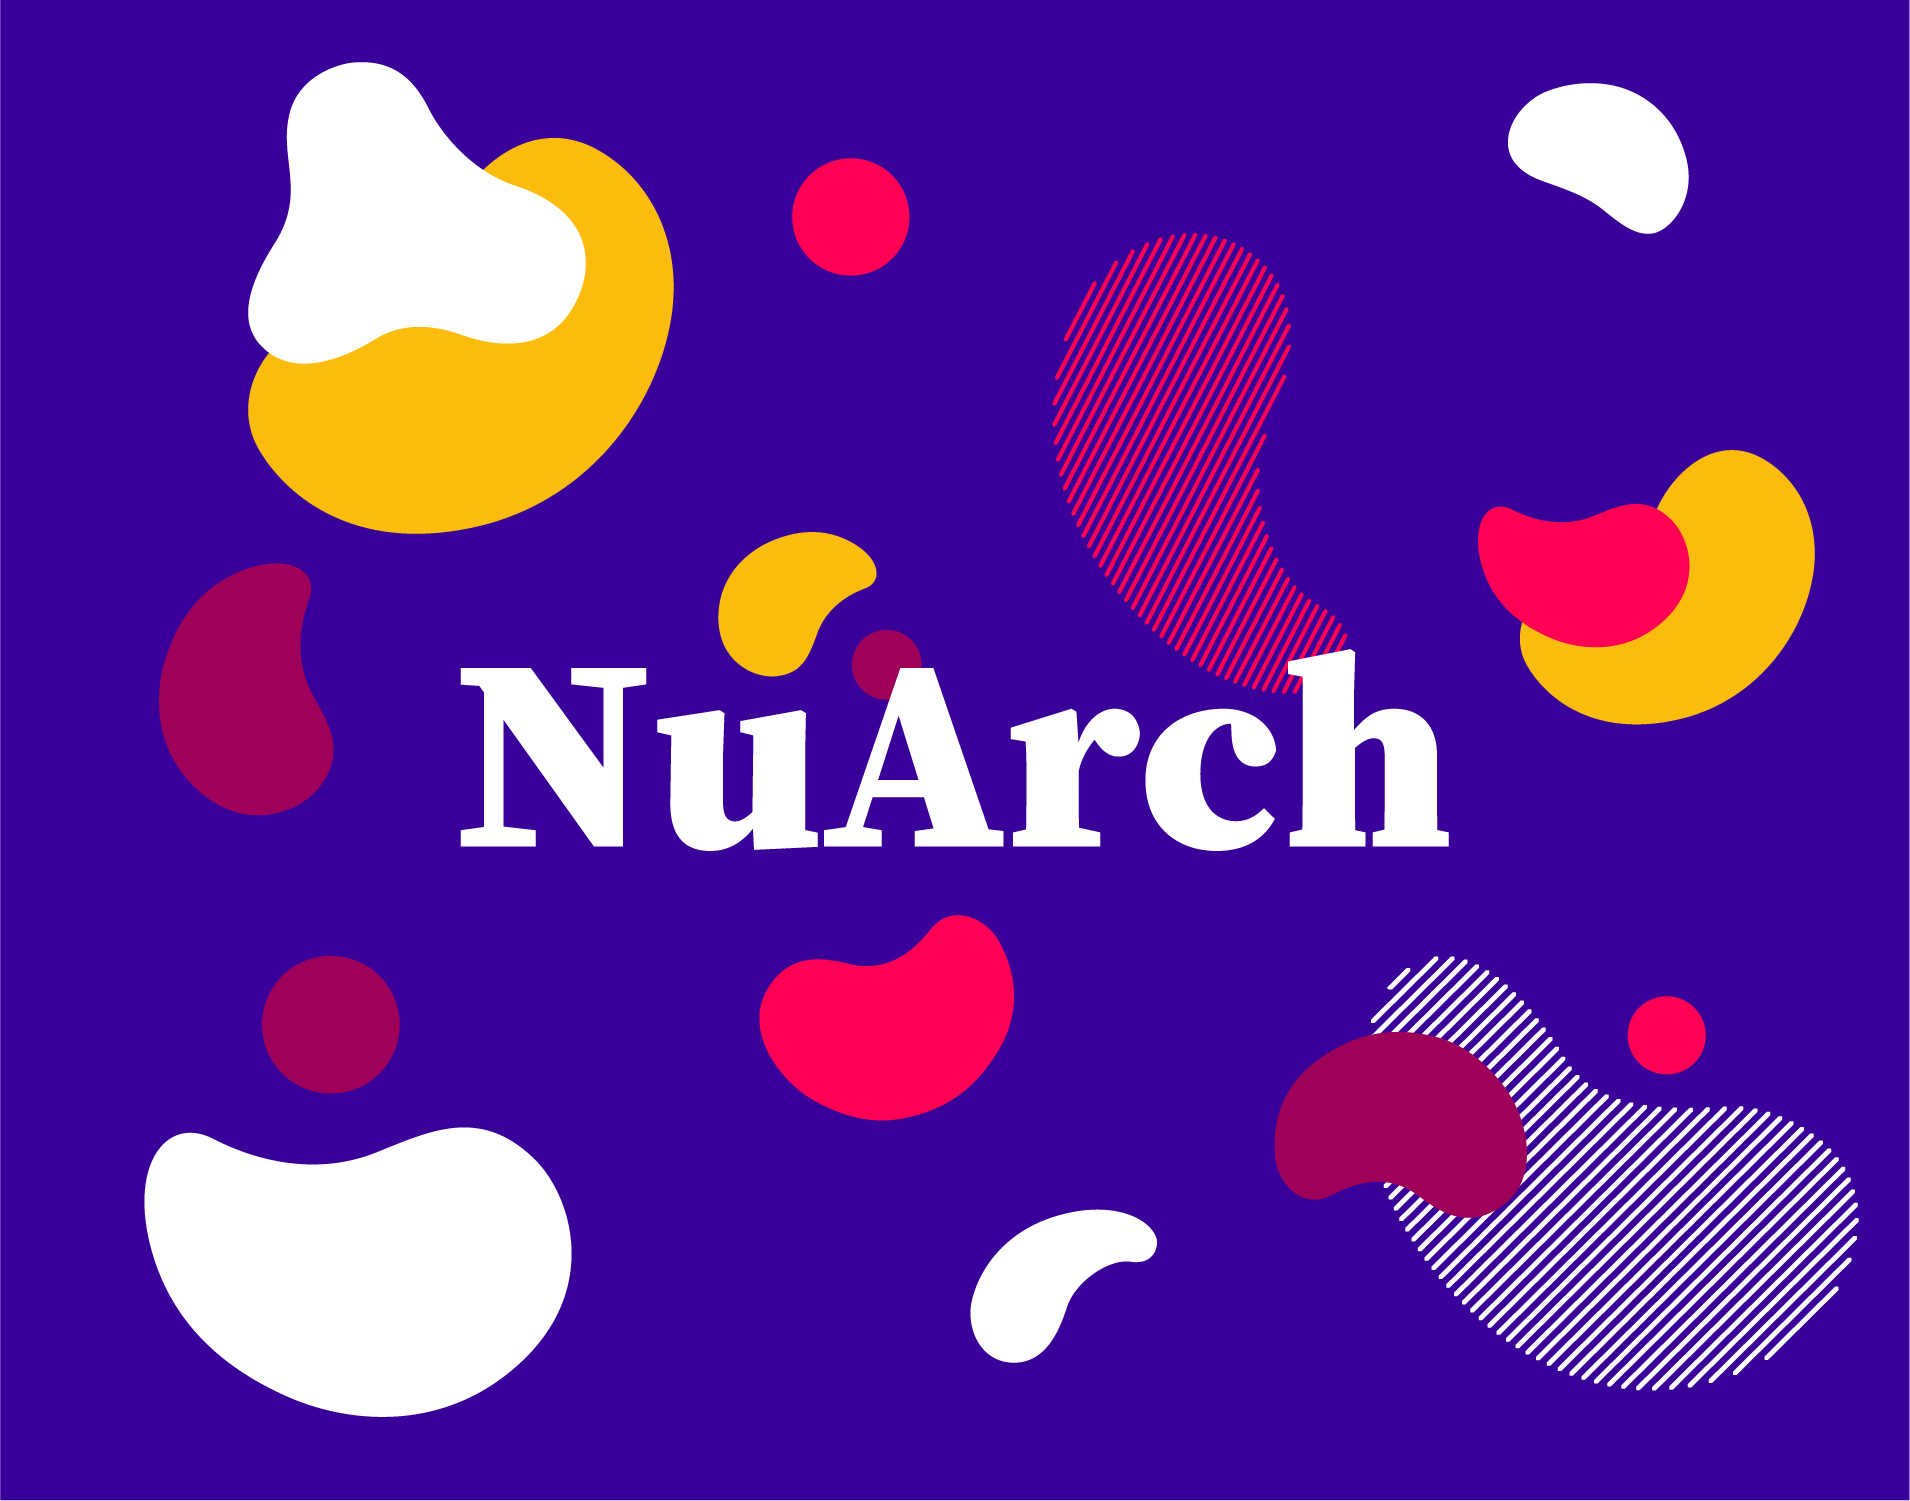 NuArch | How architectural forms affect emotion - NuArch follow up